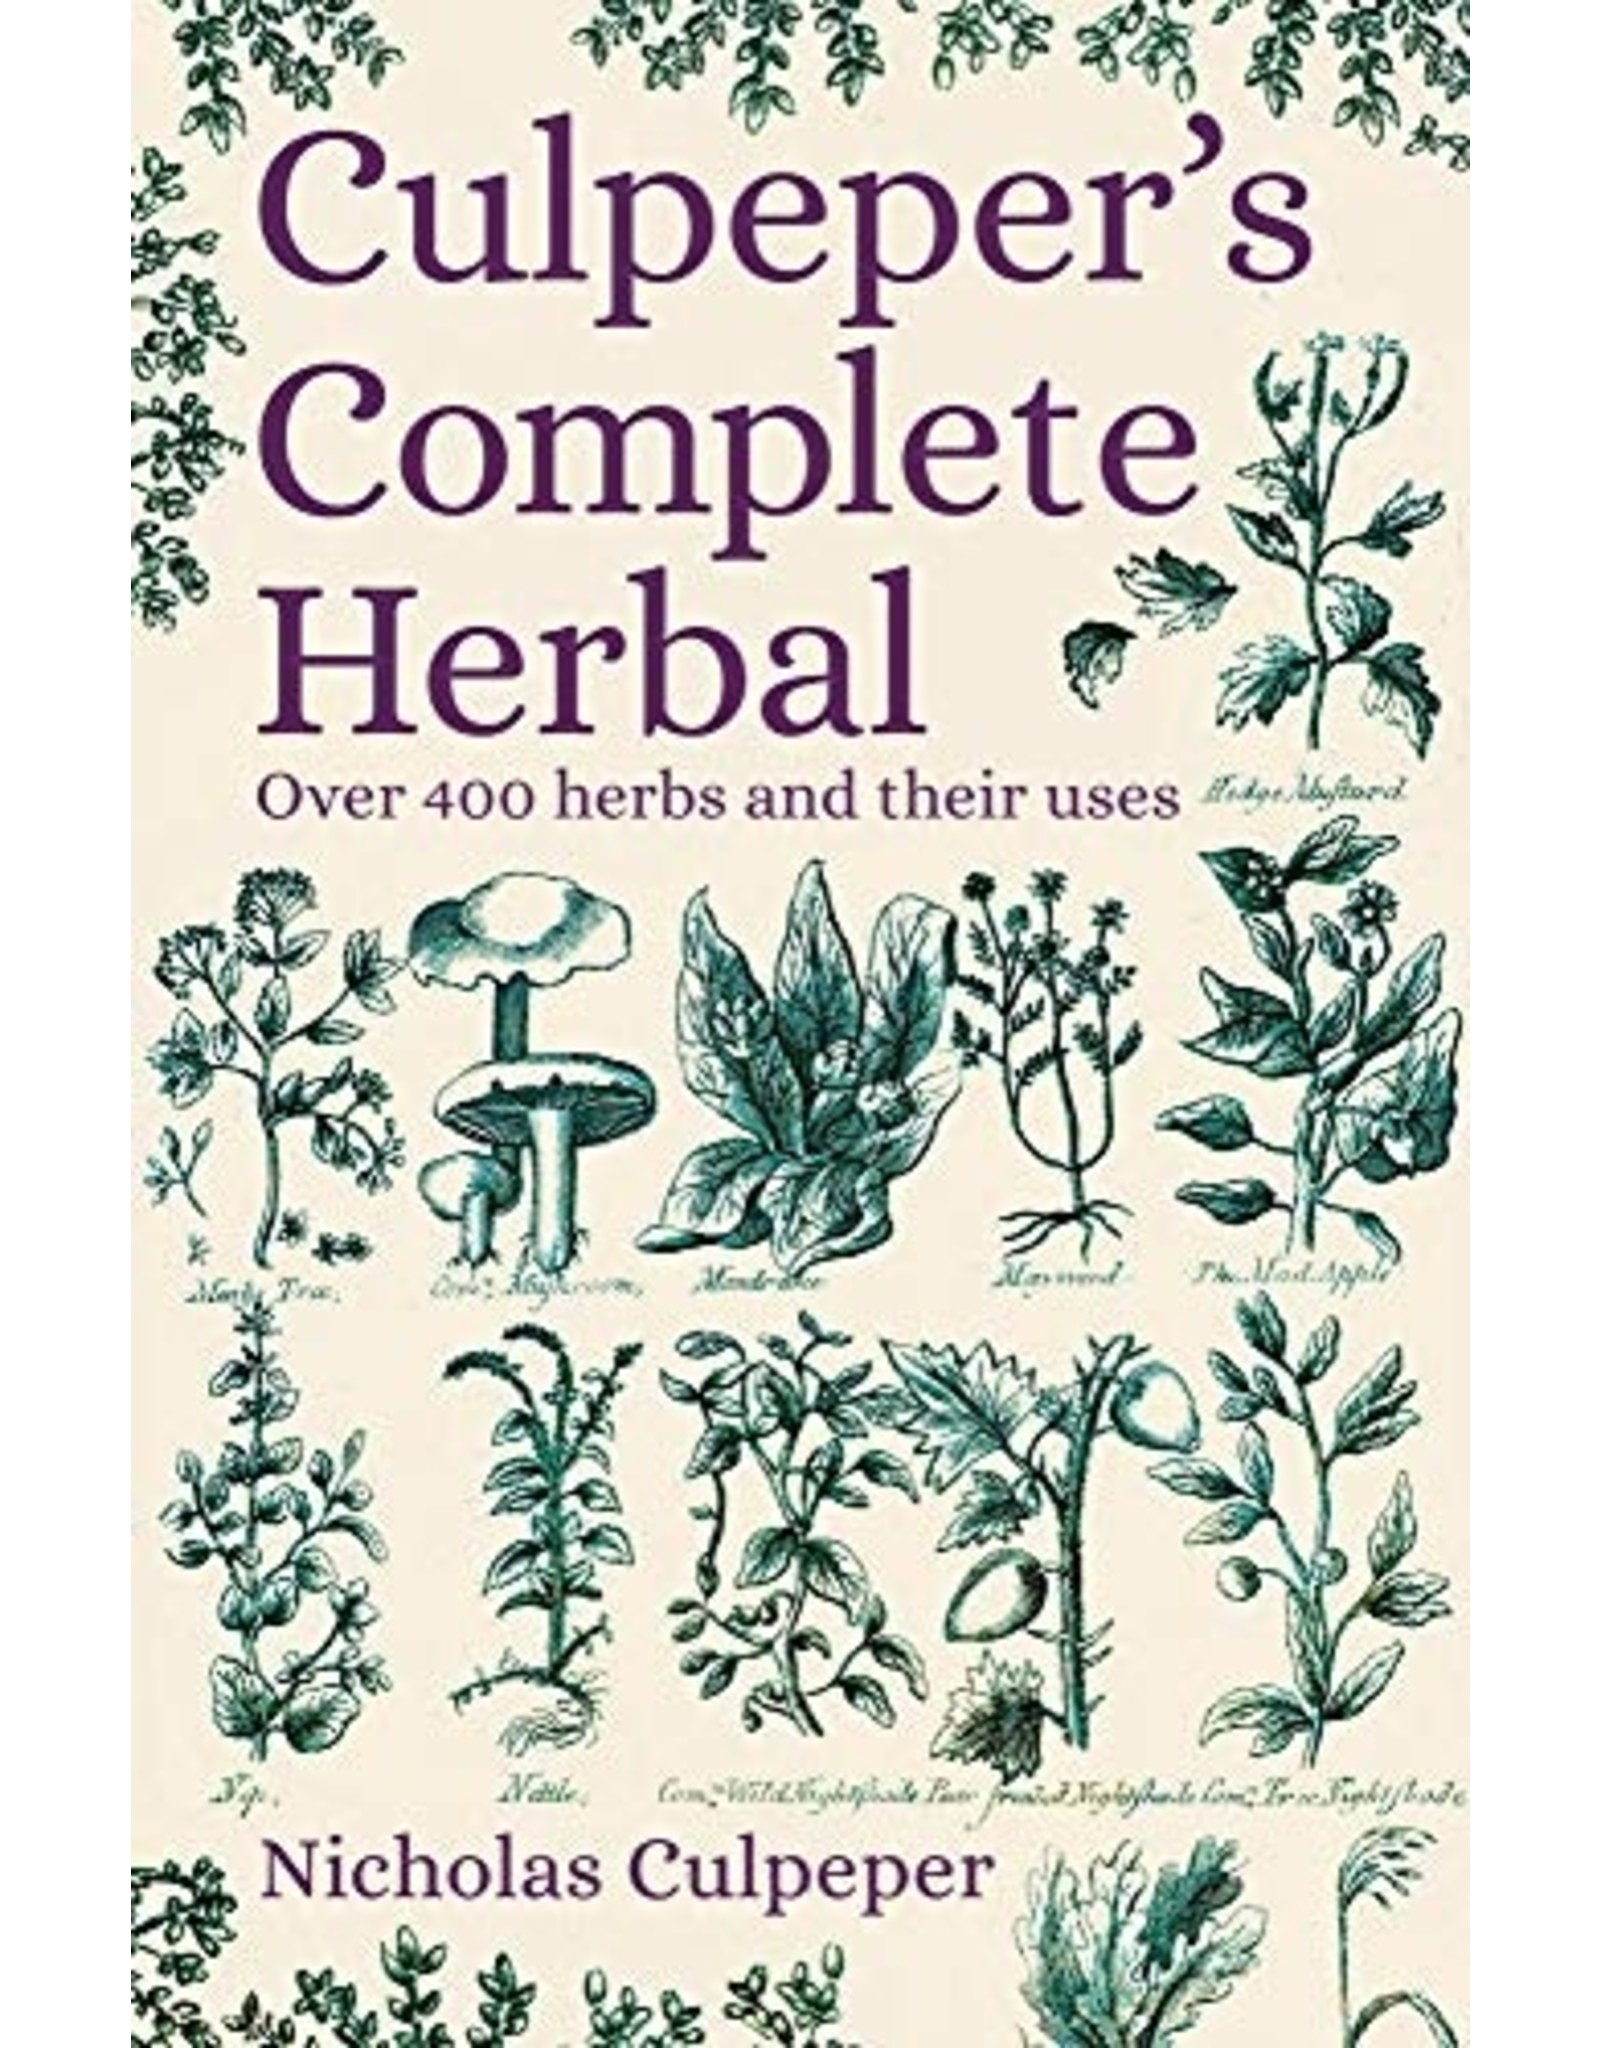 Culpeper's Complete Herbal: Over 400 Herbs & Their Uses